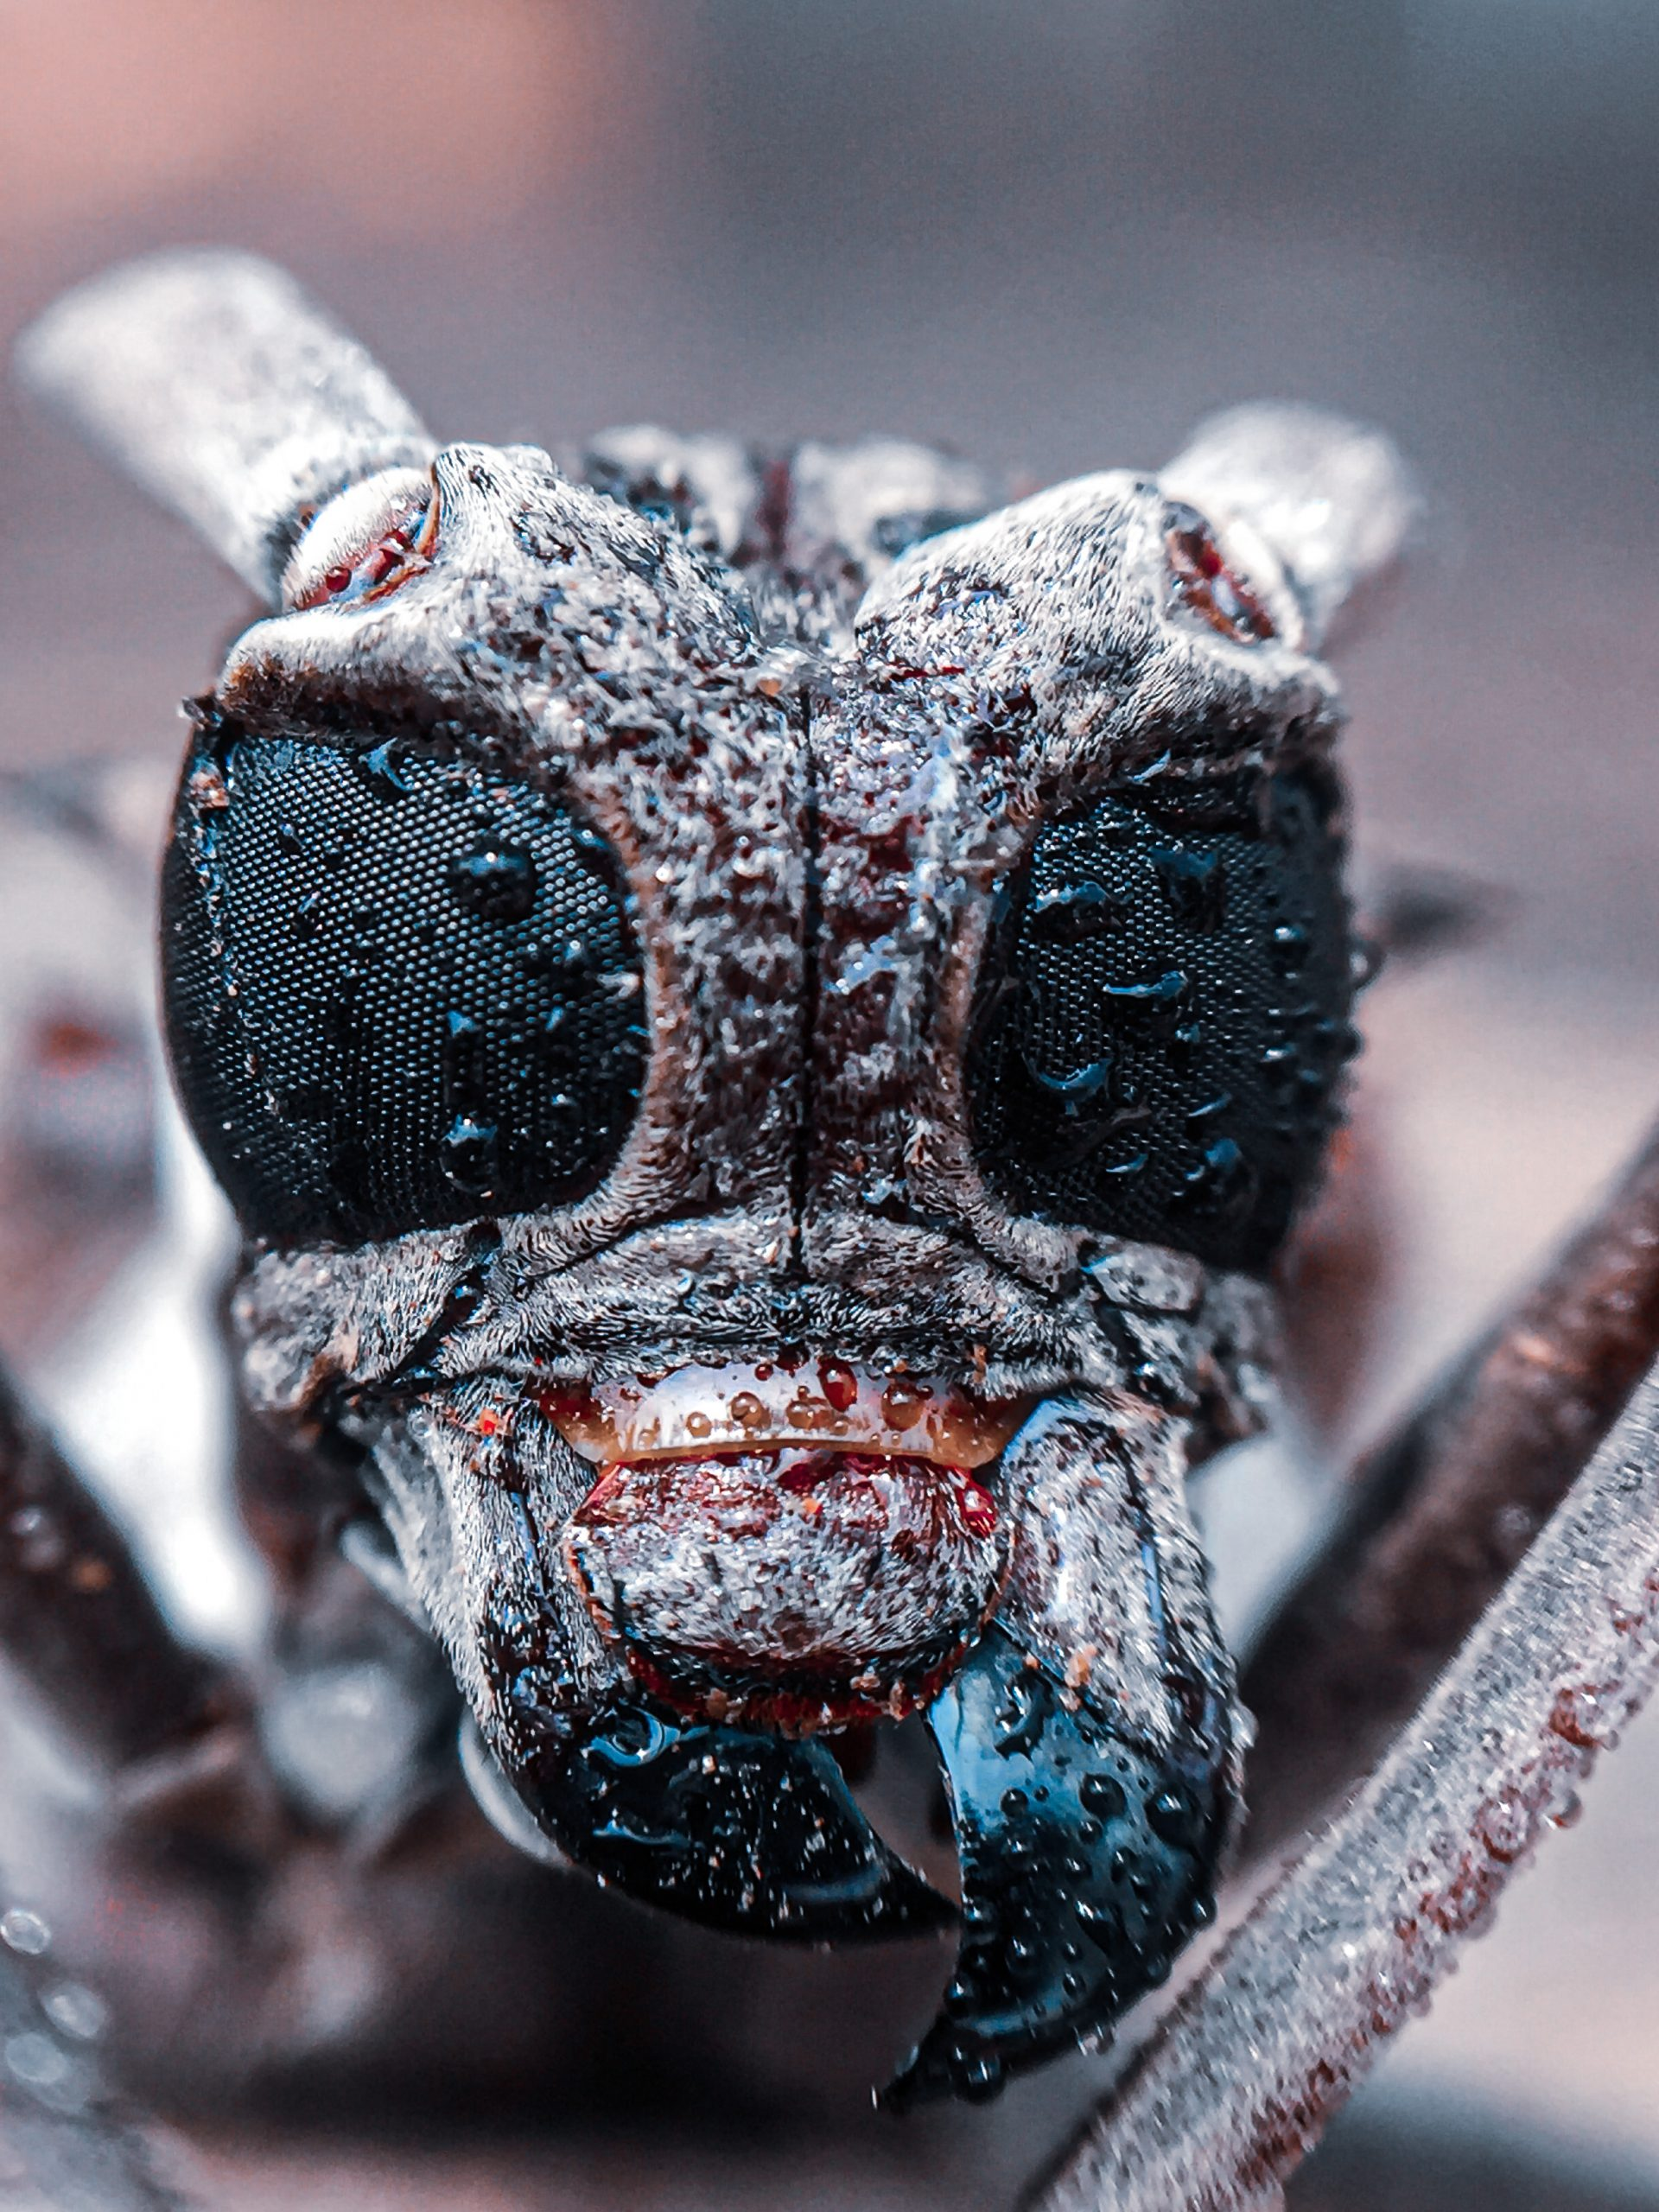 Face of an insect